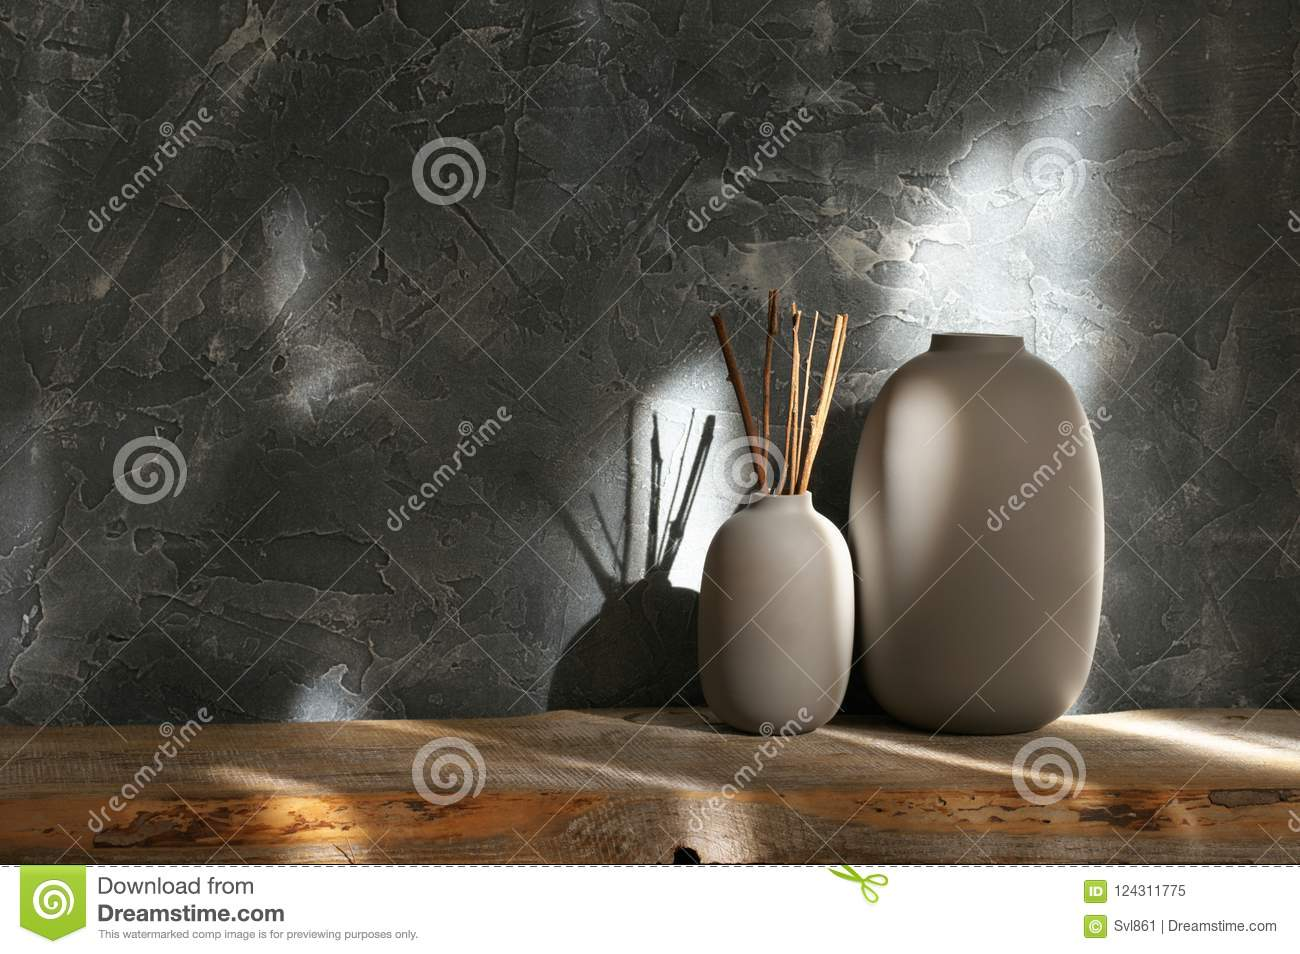 Neutral colored vases, home decor